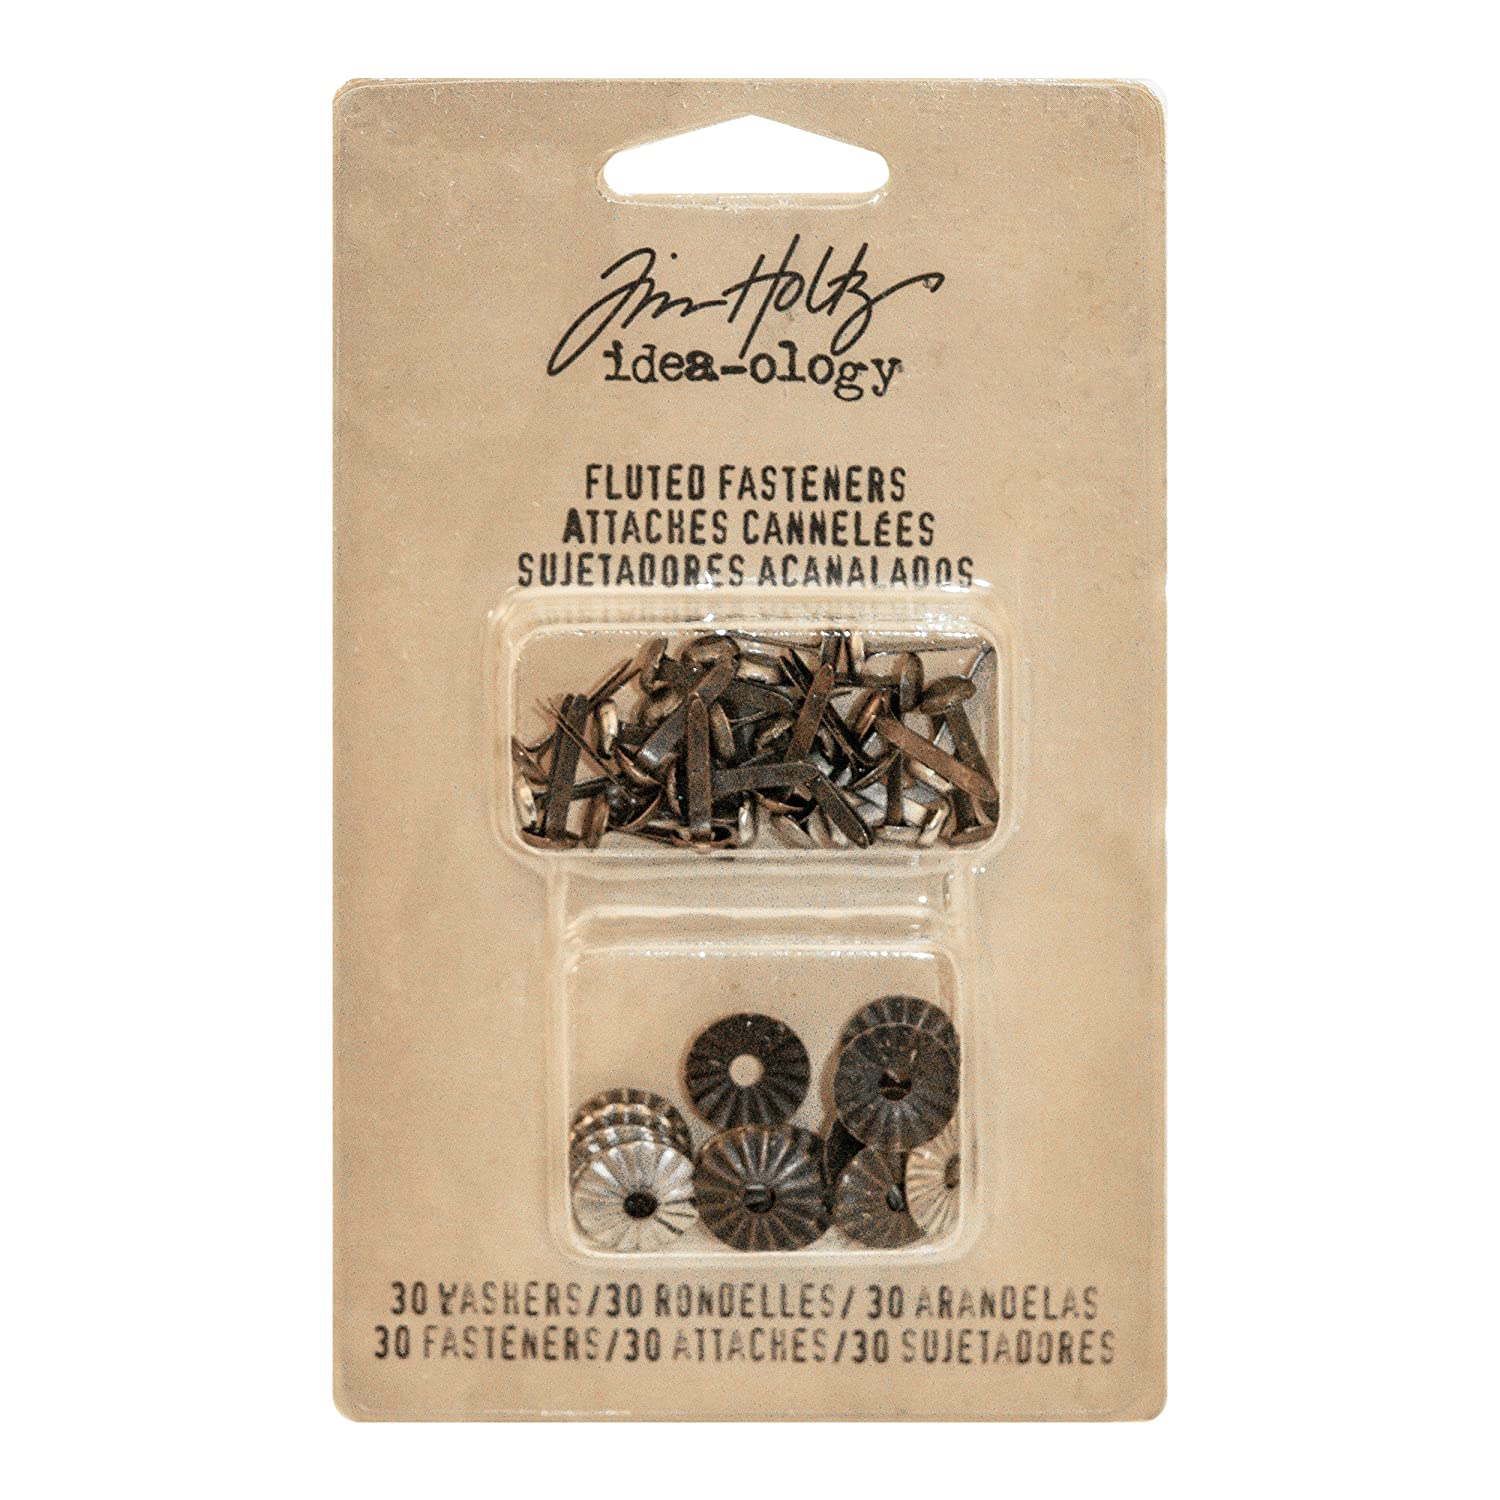 Tim Holtz Idea-ology TH93268 Hex Fasteners 30/Pack, 1/4 and 1/2 Designs, Antiqued Nickel, Brass & Copper Advantus